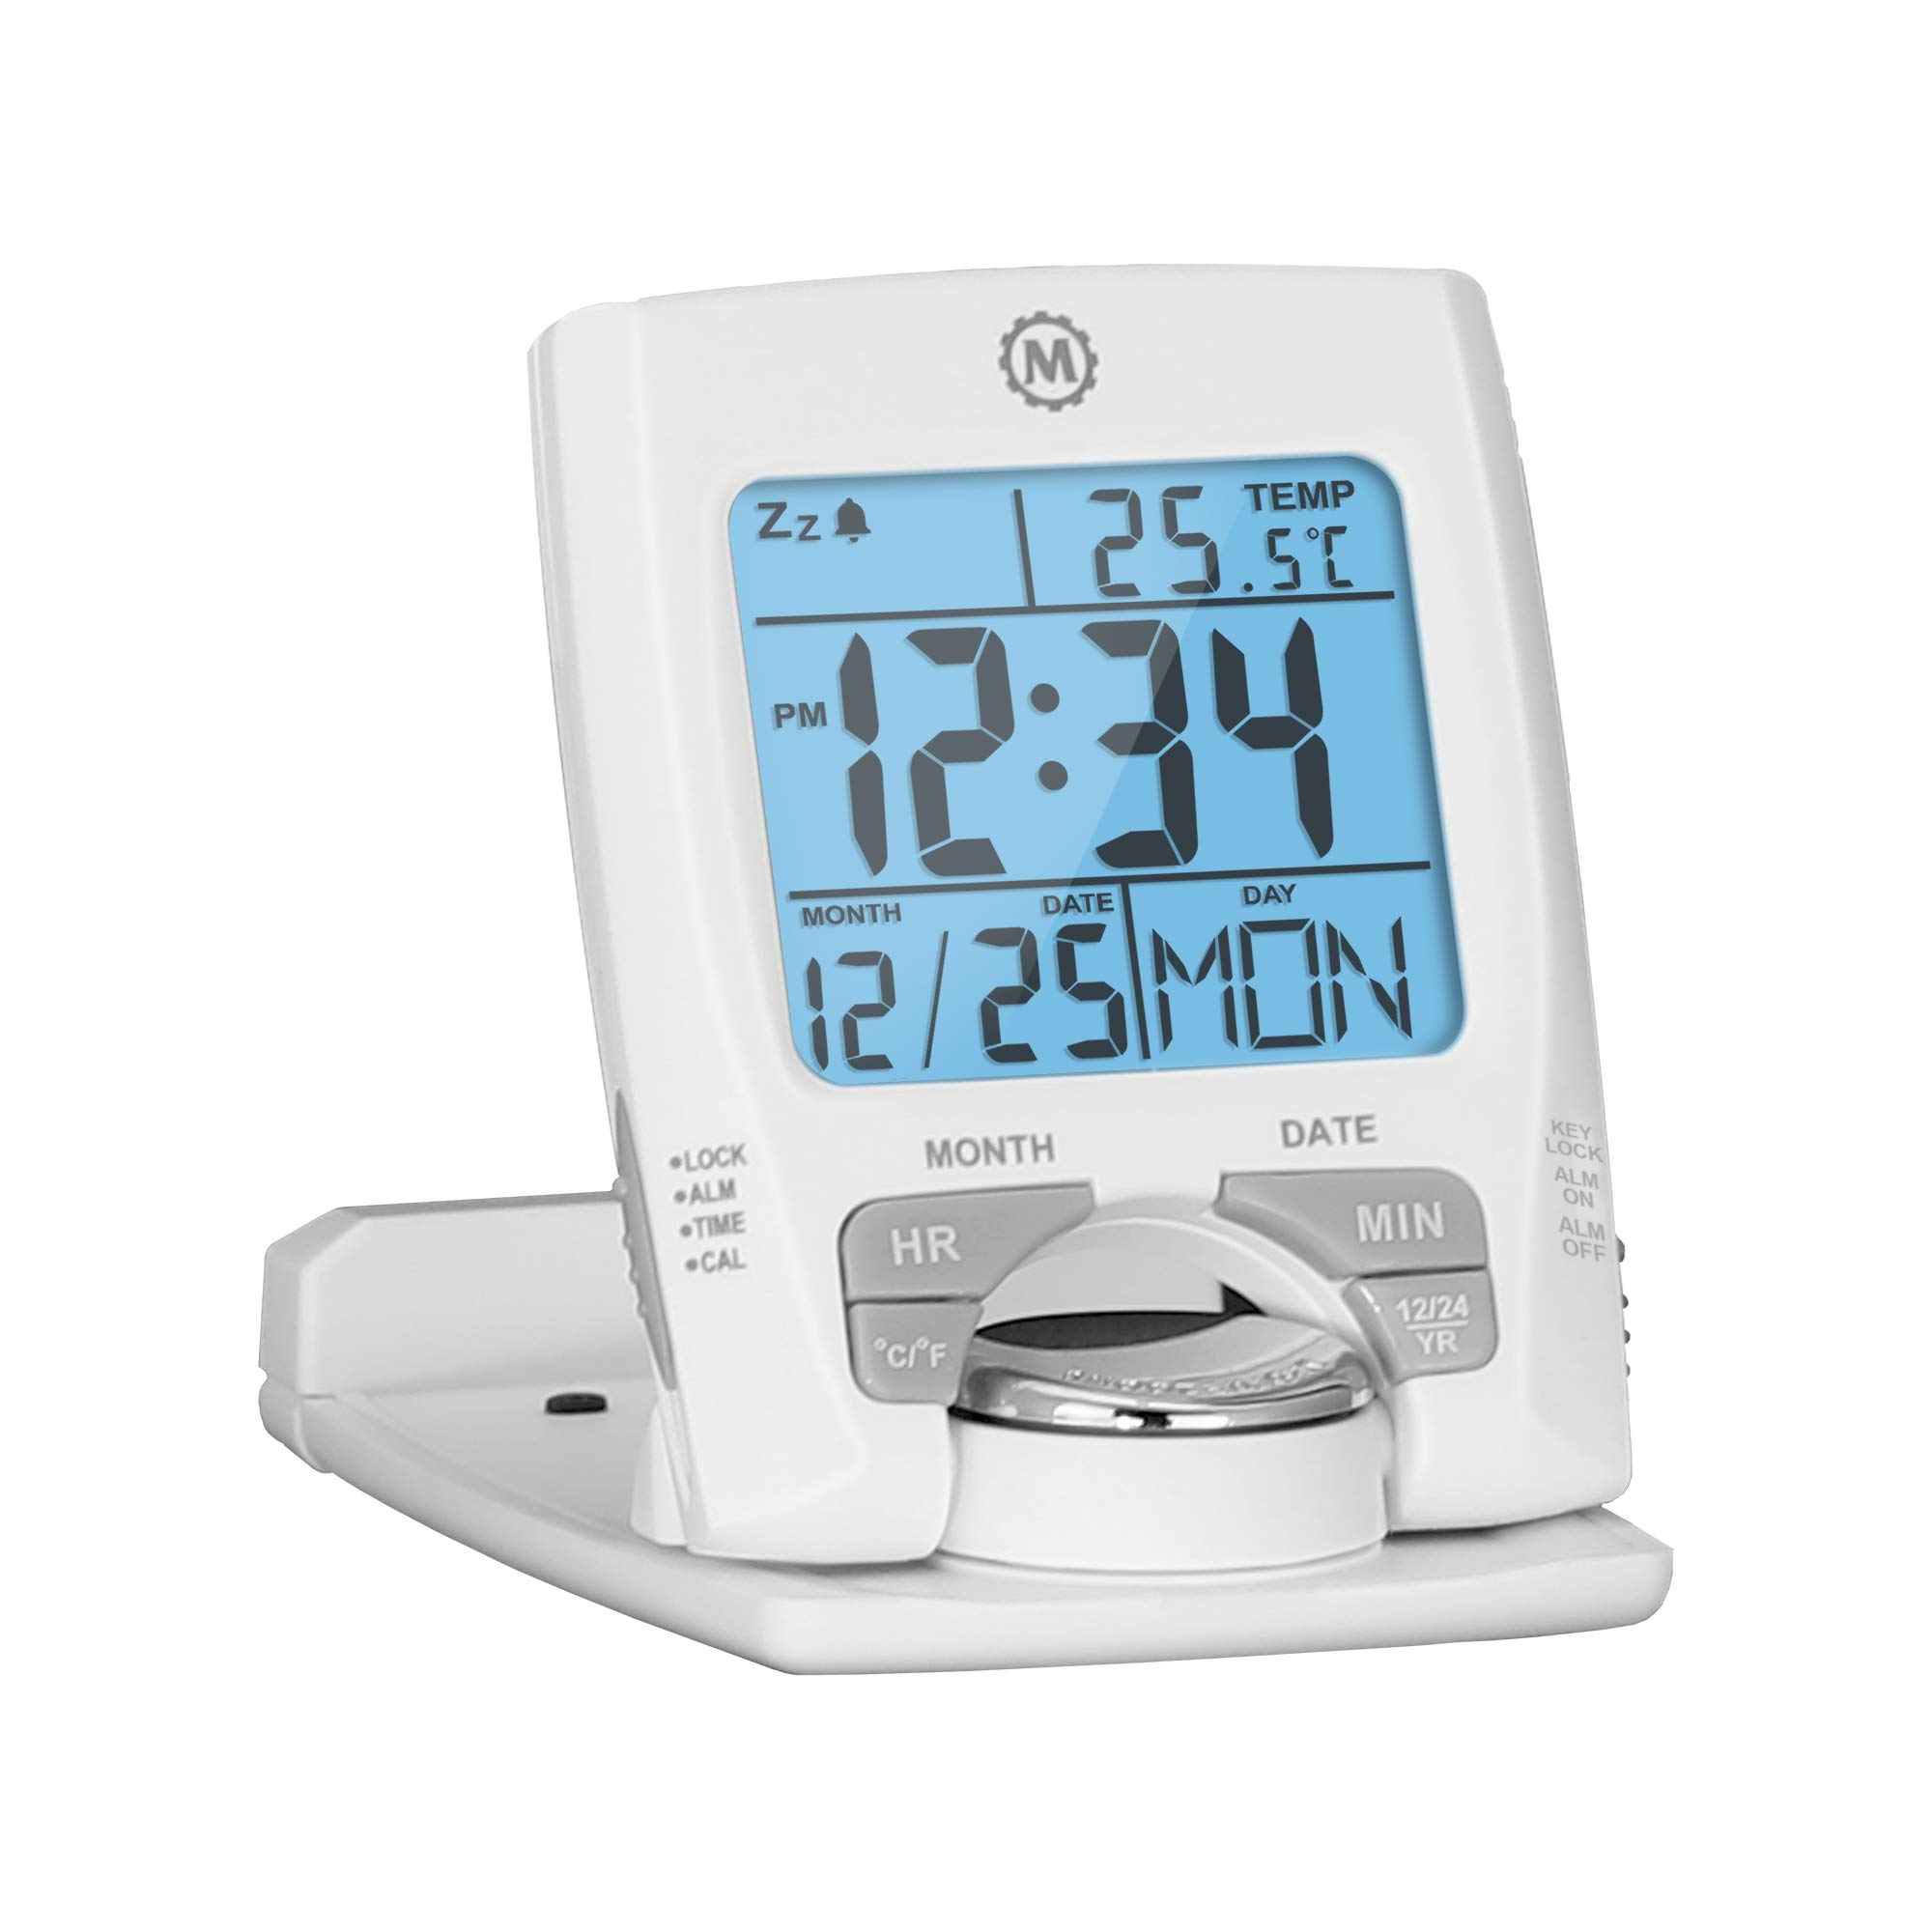 Marathon Travel Alarm Clock with Calendar & Temperature - Phone Stand Function - Battery Included - CL030023WH (White)